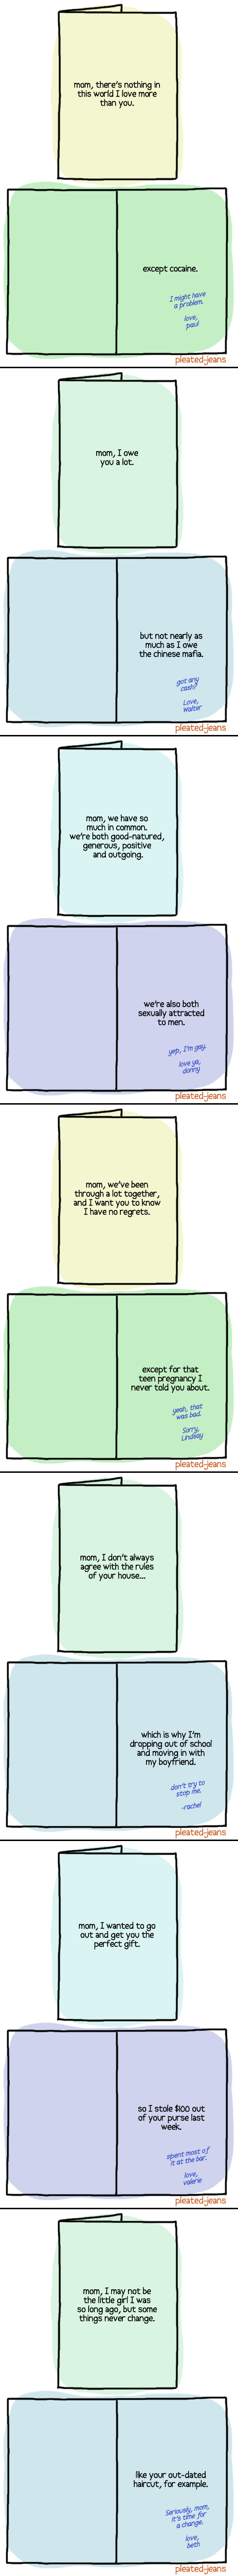 Mother's Day confession cards Funny Chat Conversation Picture